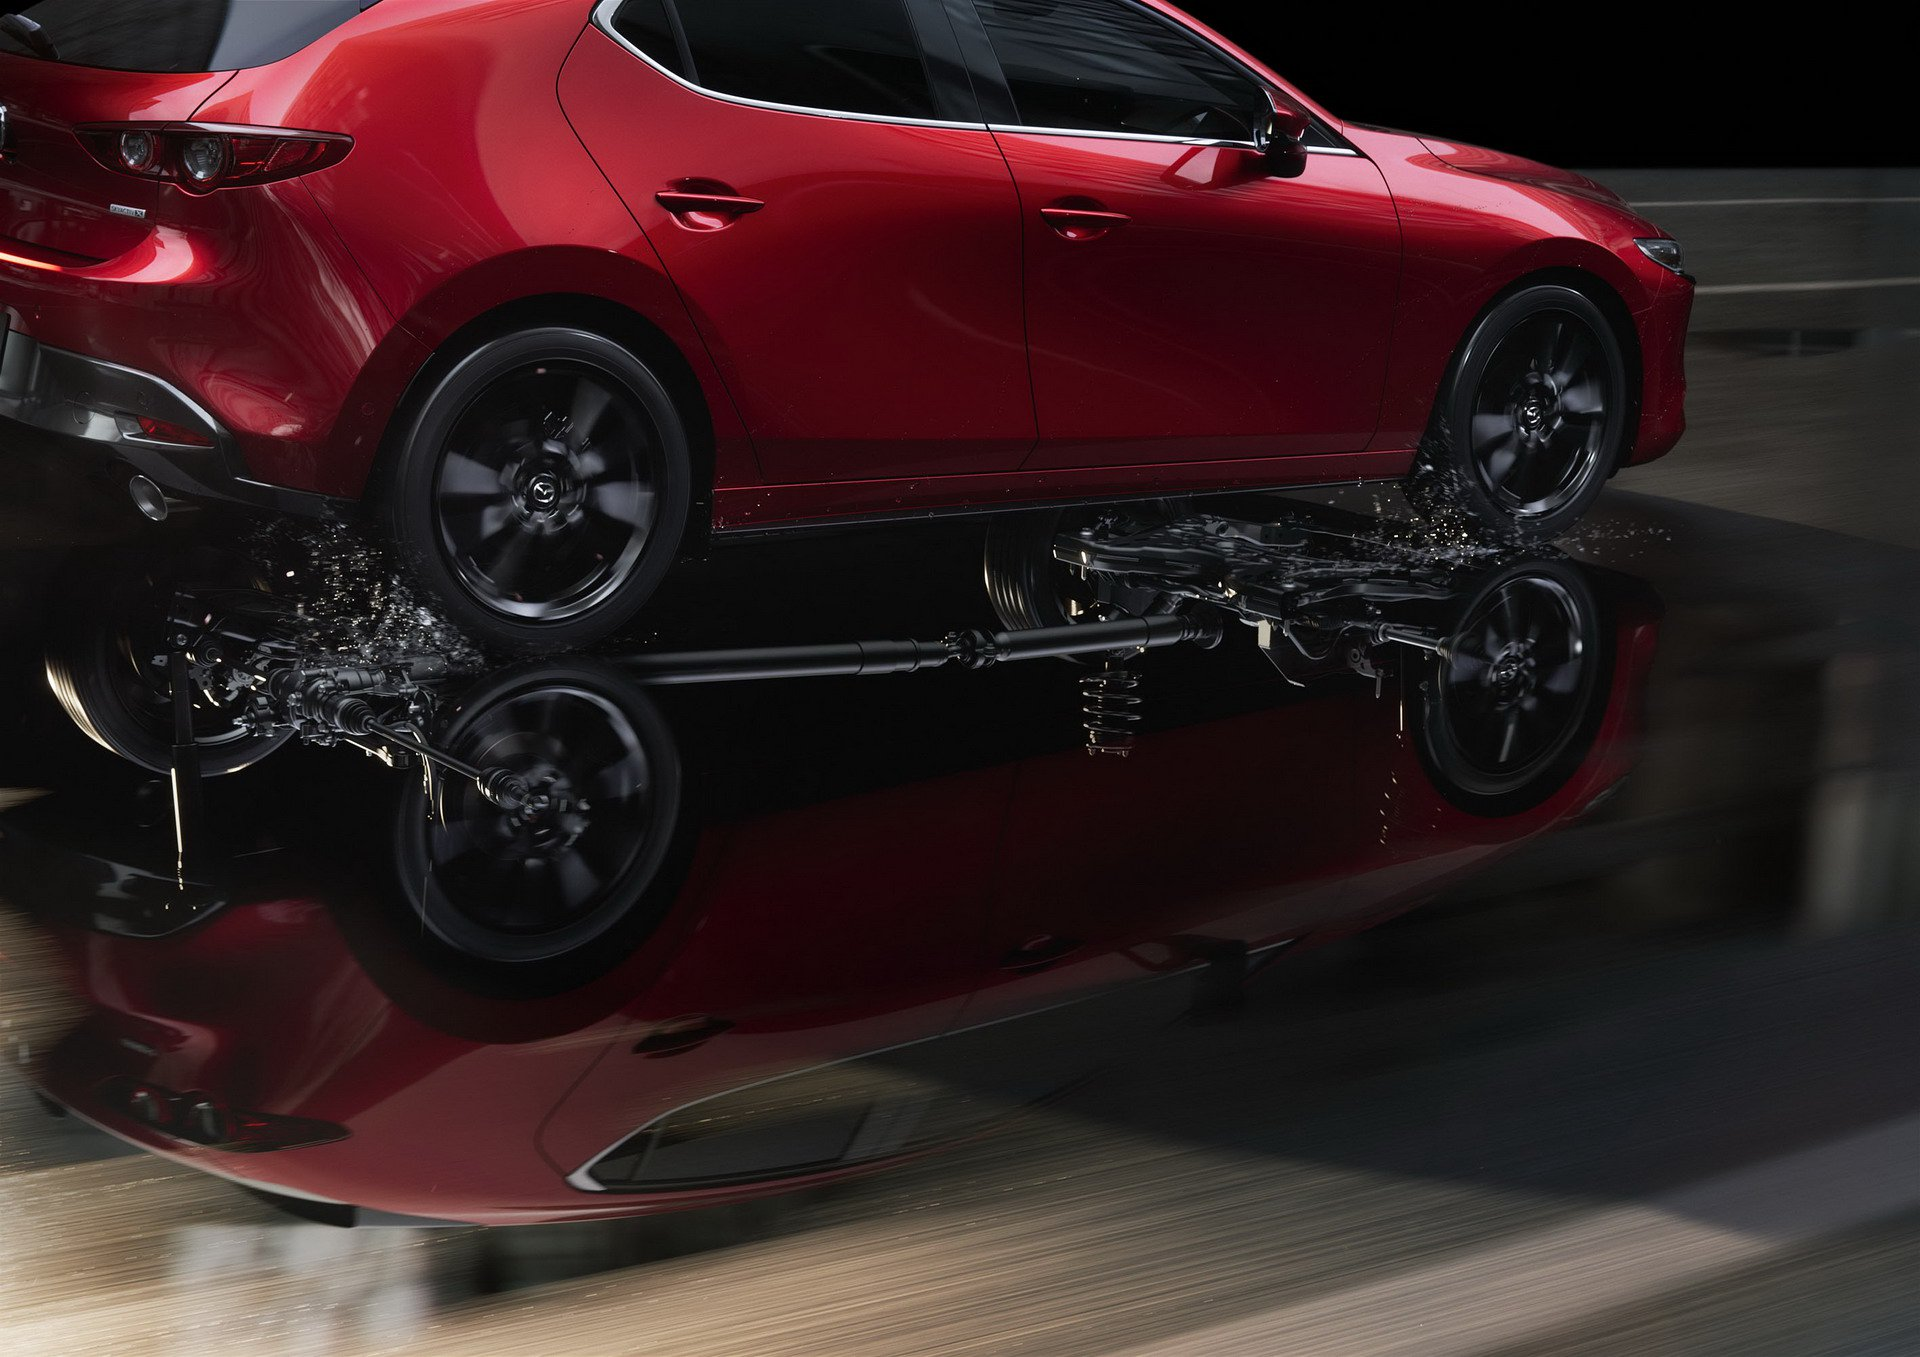 Mazda3 Hatchback and Mazda3 sedan 2019 (41)